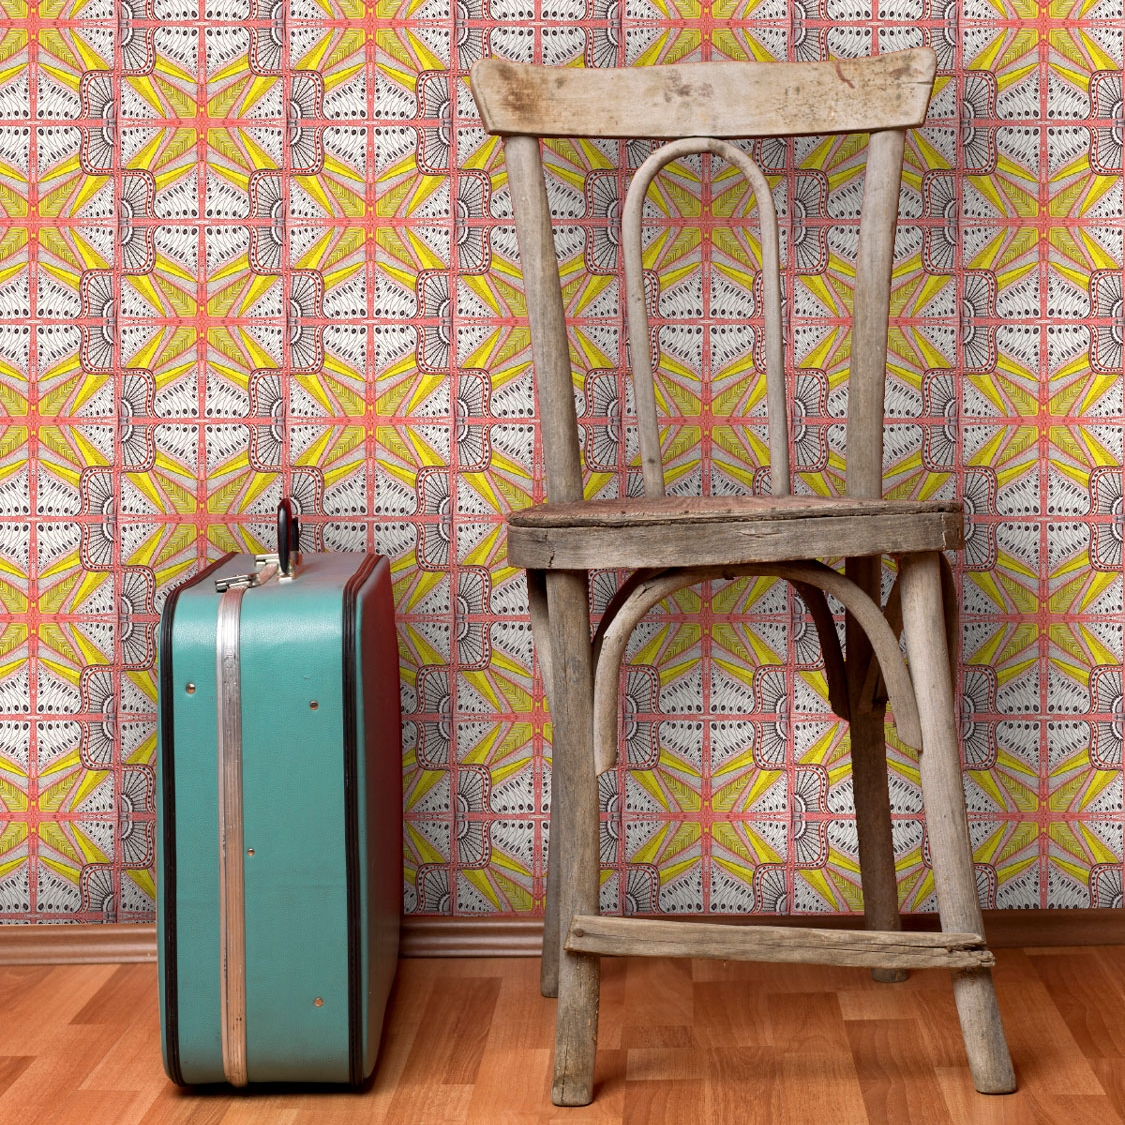 Suitcase-and-Wood-Chair-ZAGER-Saffron.jpg